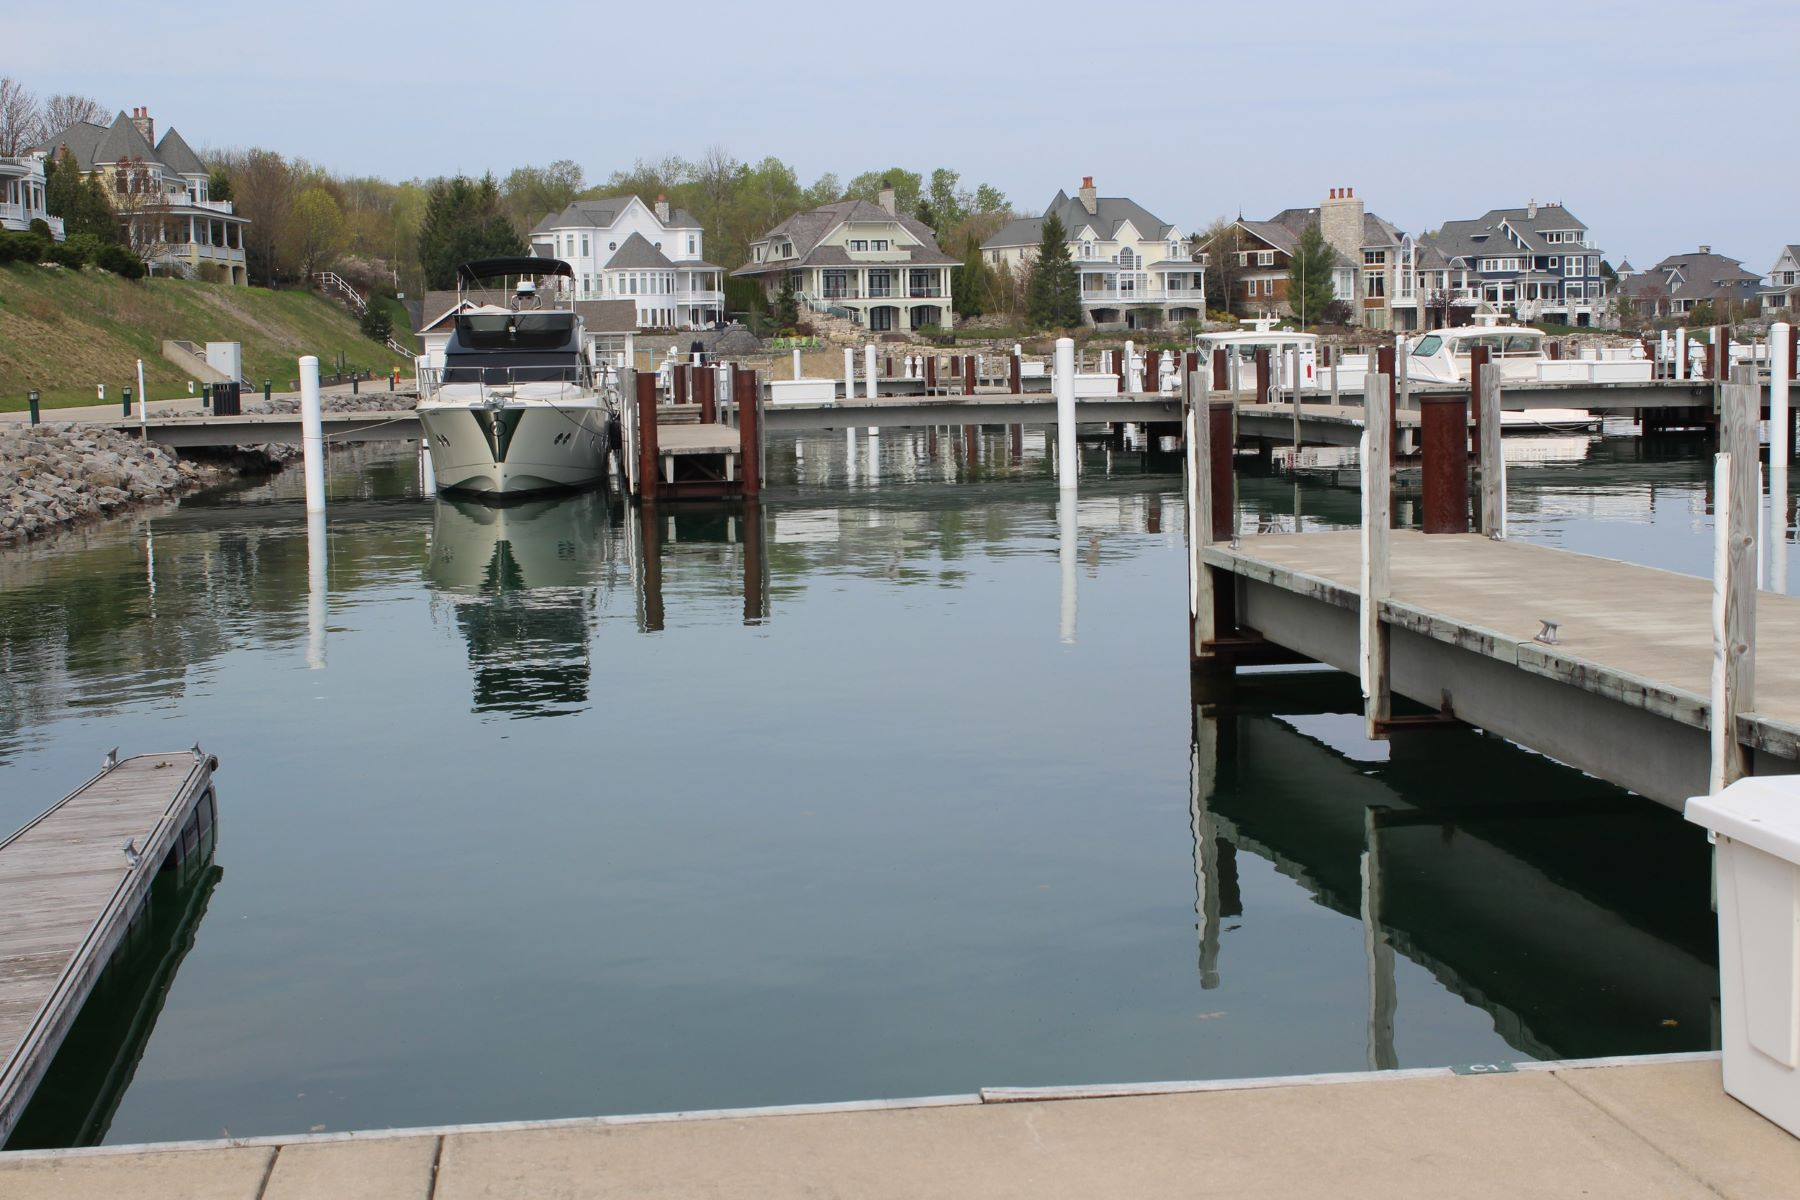 Land for Sale at Yacht Dock 1 4300 Vista Drive Unit 1 Bay Harbor, Michigan, 49770 United States